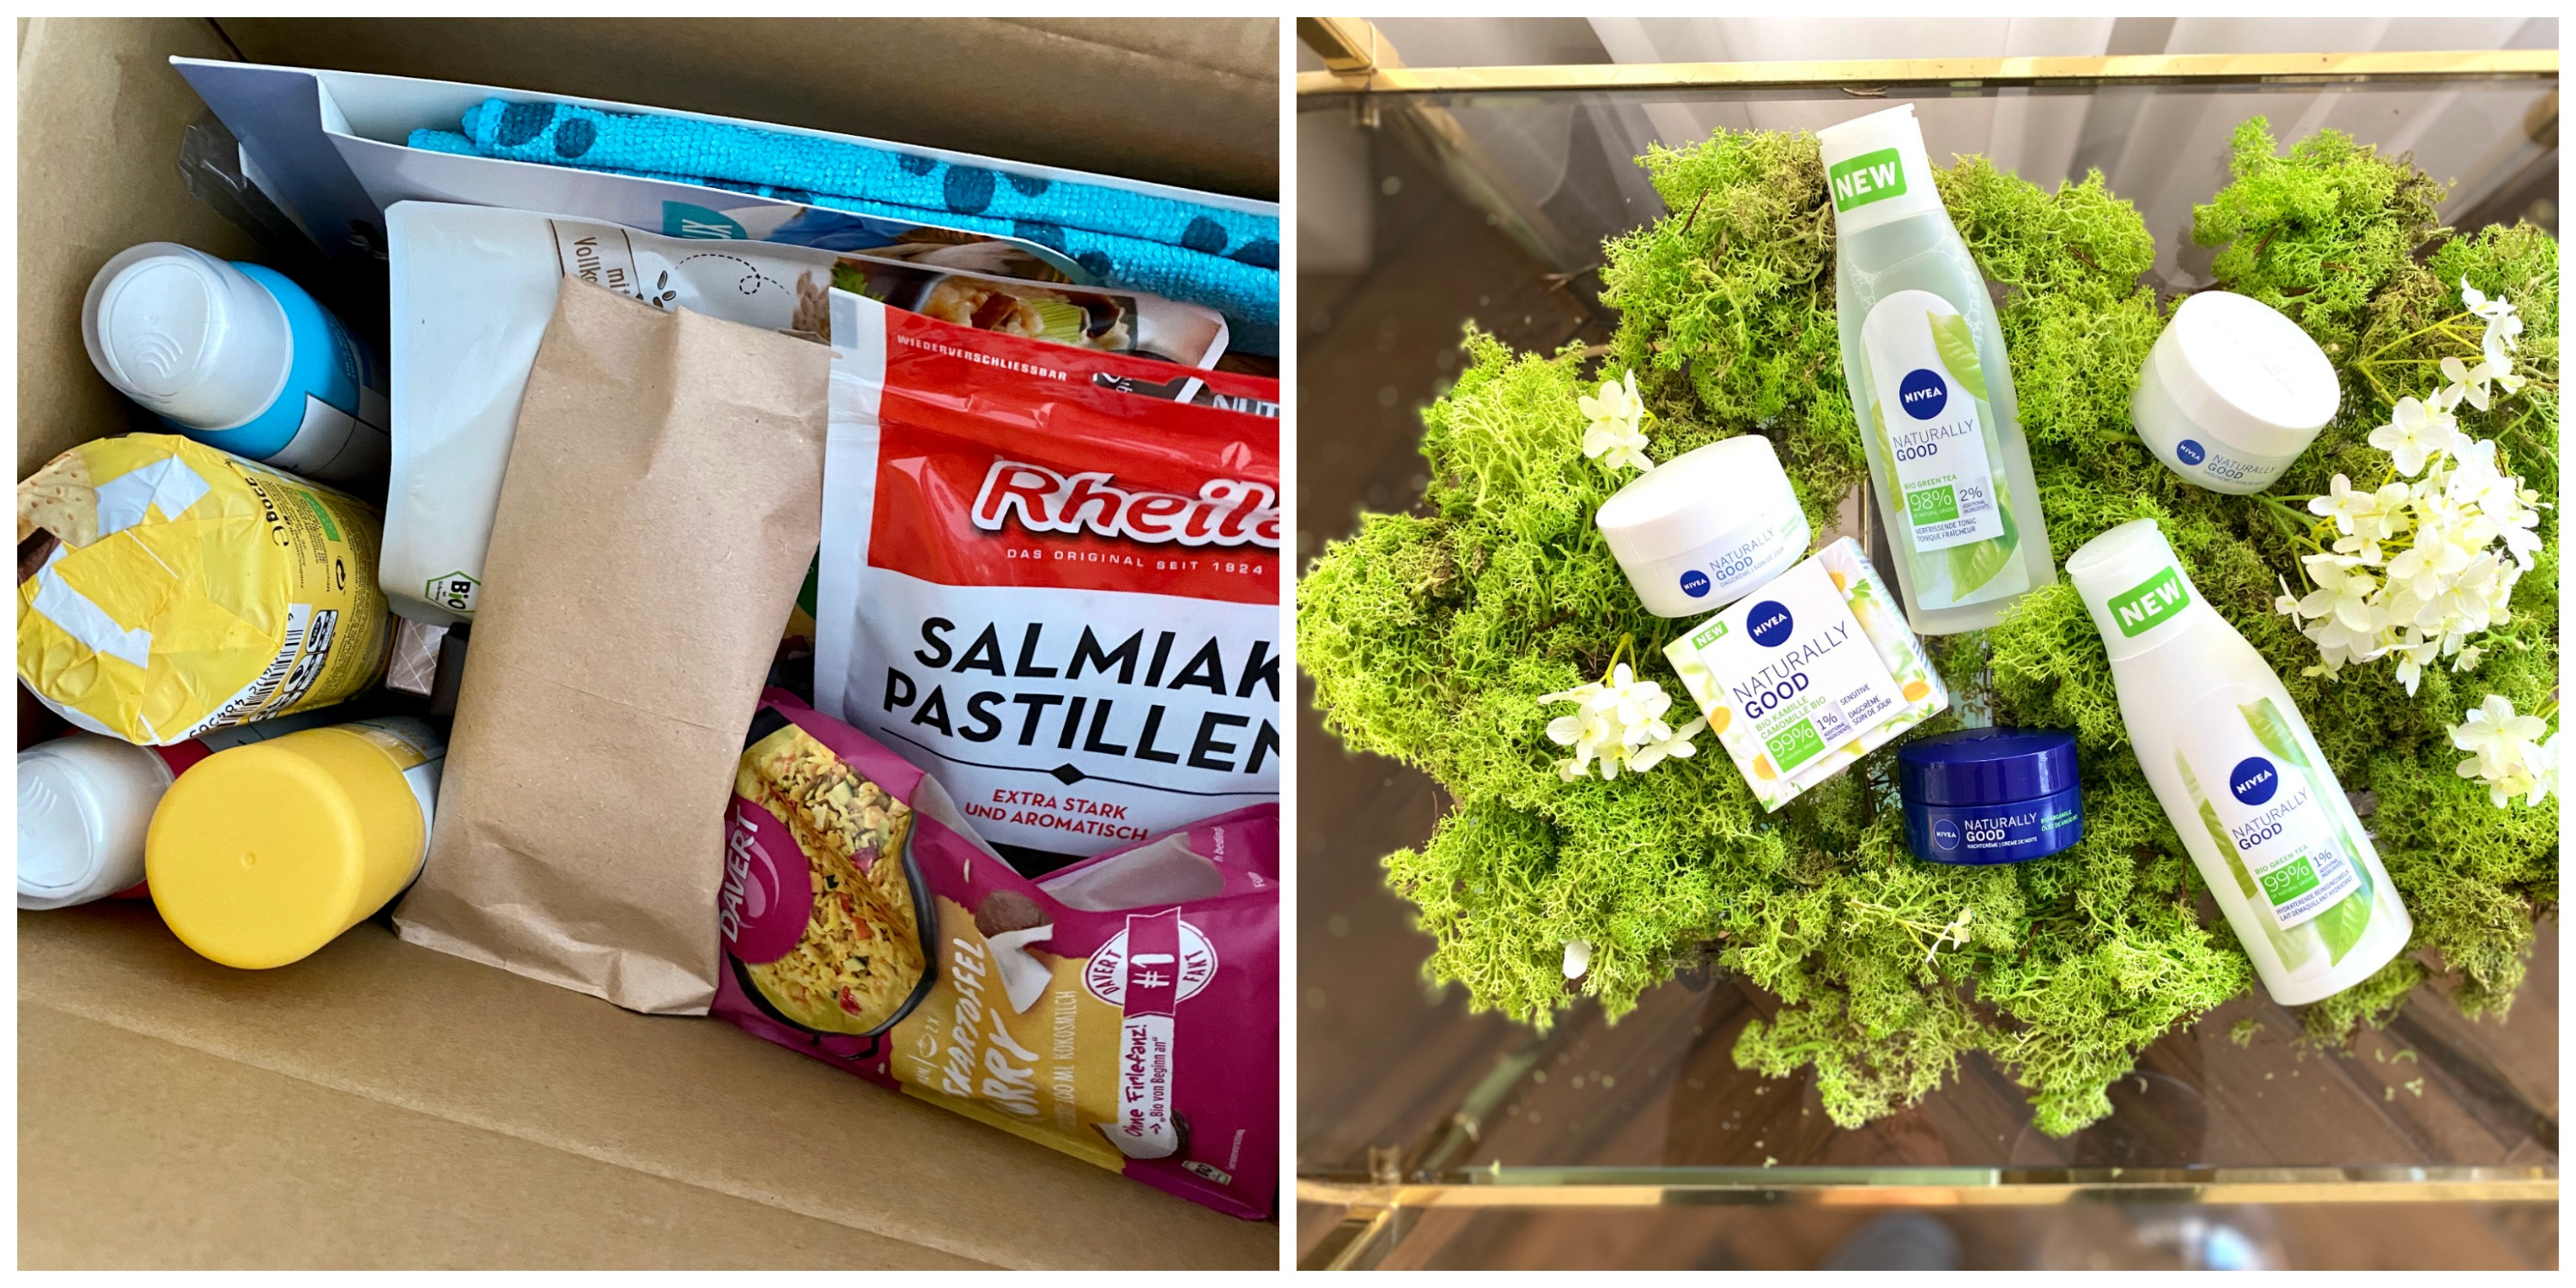 TGIB WEEKLY: Opruimen, Shoppen En Haat Aan Nootmuskaat Nivea naturally good